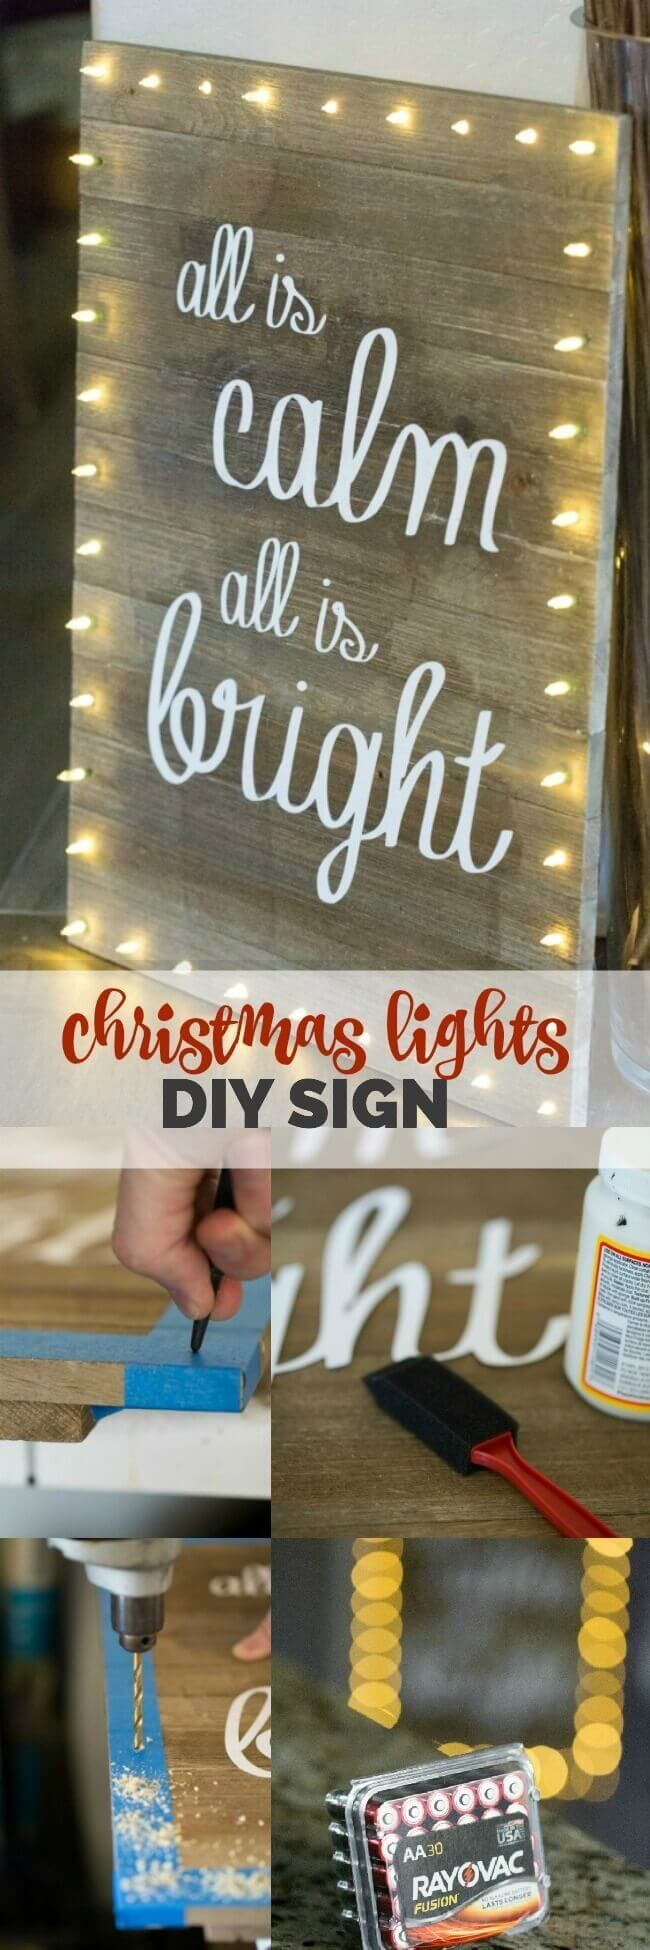 Best 25+ Christmas signs ideas on Pinterest | Country christmas ...